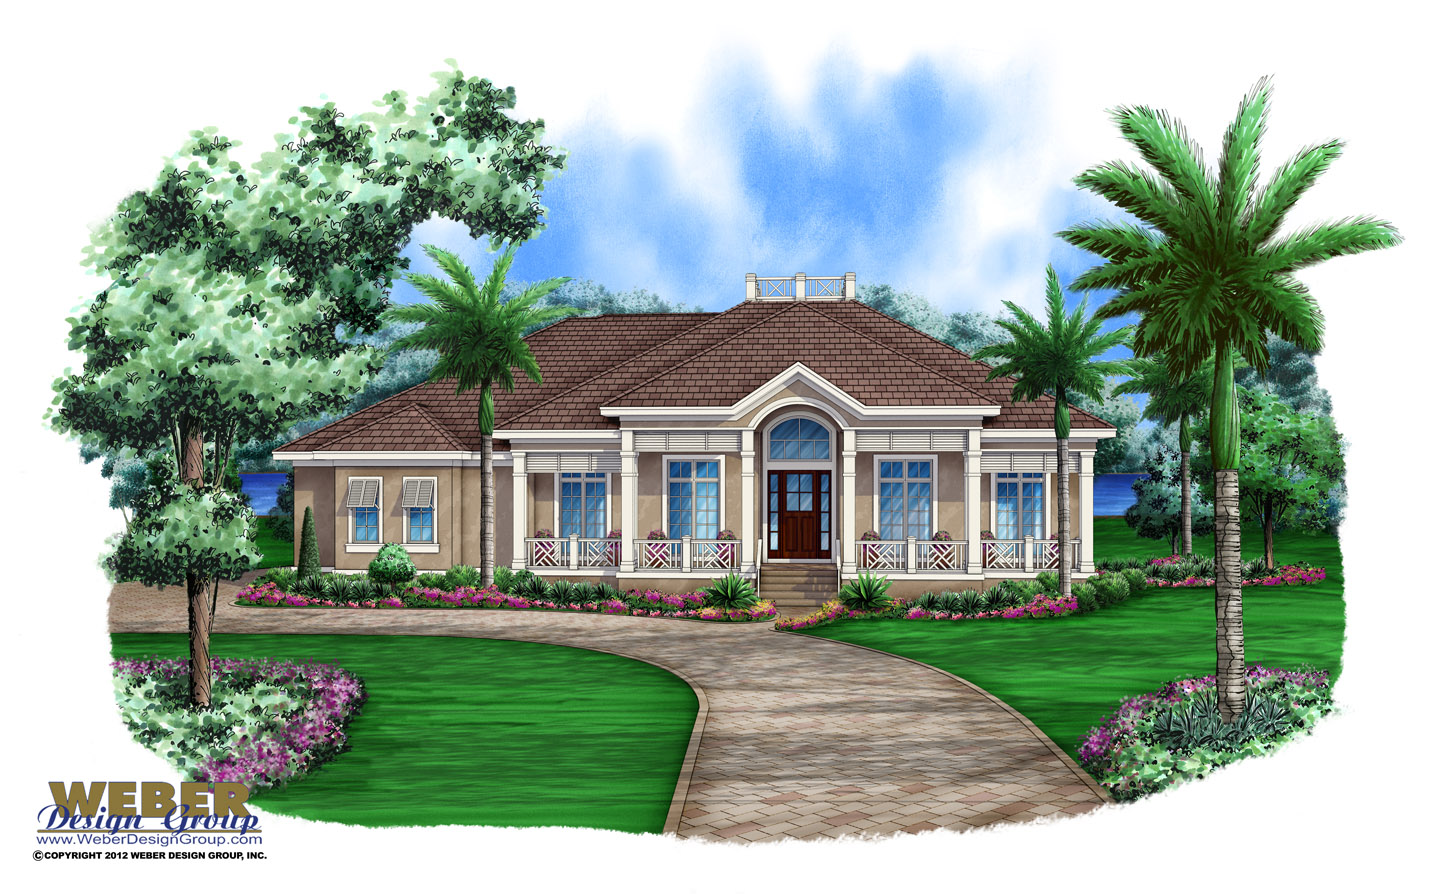 Caribbean House Plans: Tropical Island Style Beach Home ... on kame house sketch, victorian house sketch, split level house sketch, colonial house sketch, cottage house sketch, bungalow house sketch, contemporary house sketch, cape cod house sketch, pool house sketch, tudor house sketch,